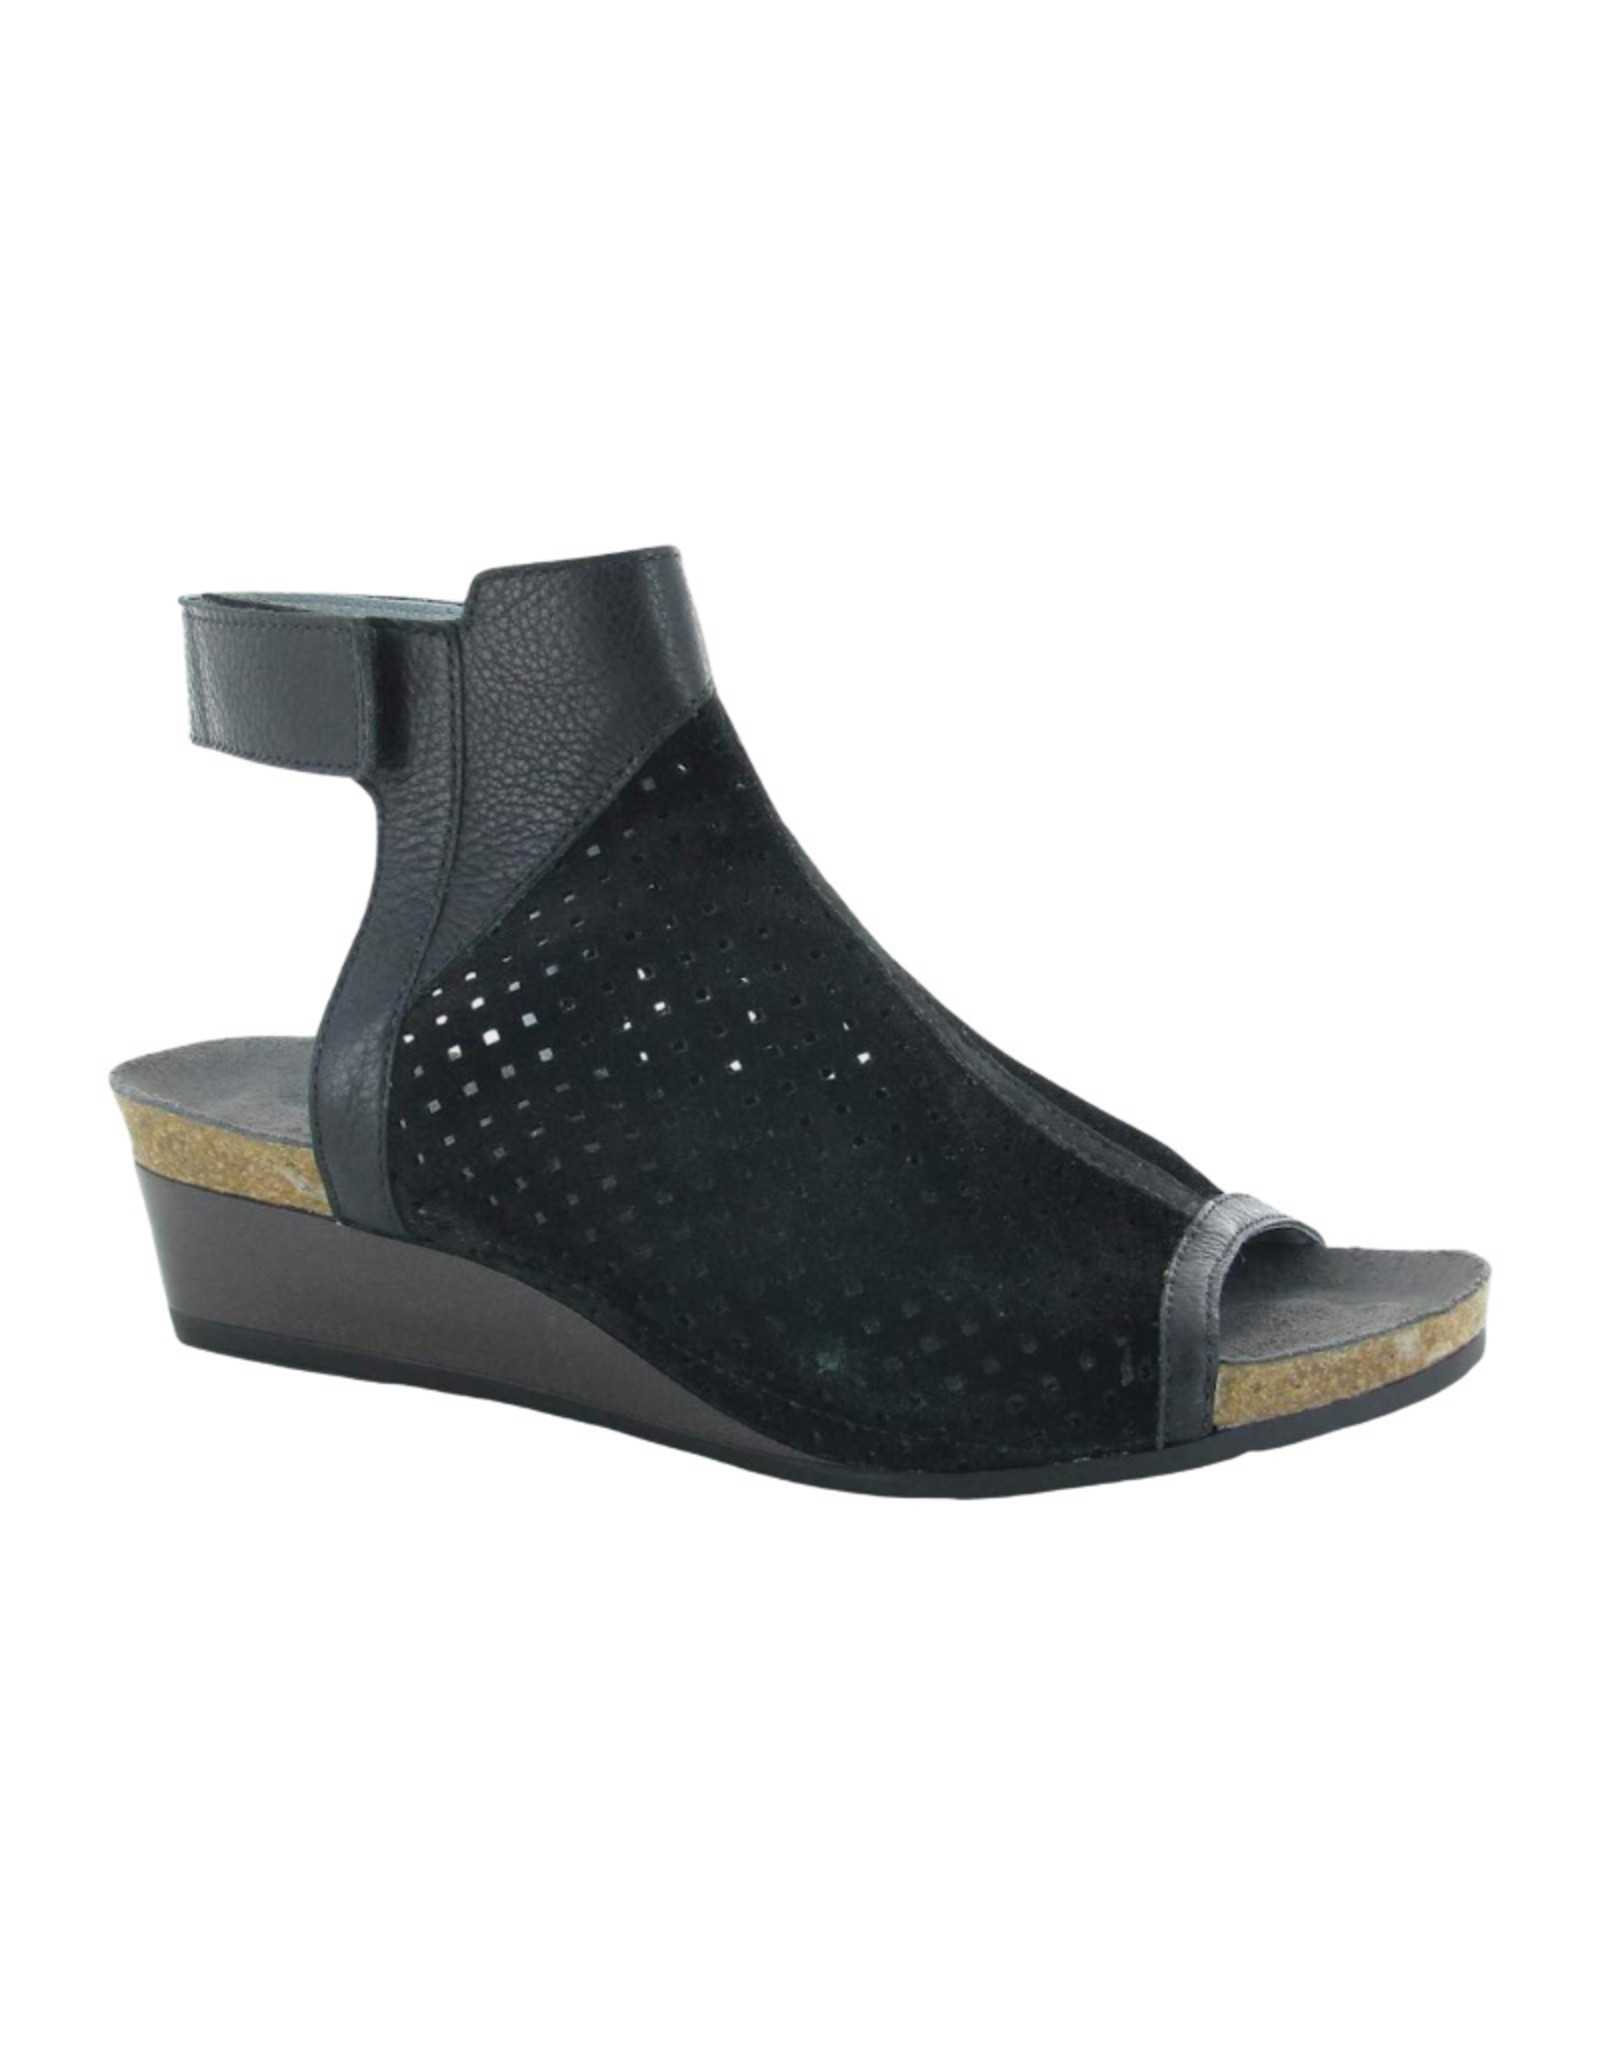 Naot Footwear Naot Oz Peep Toe Wedge